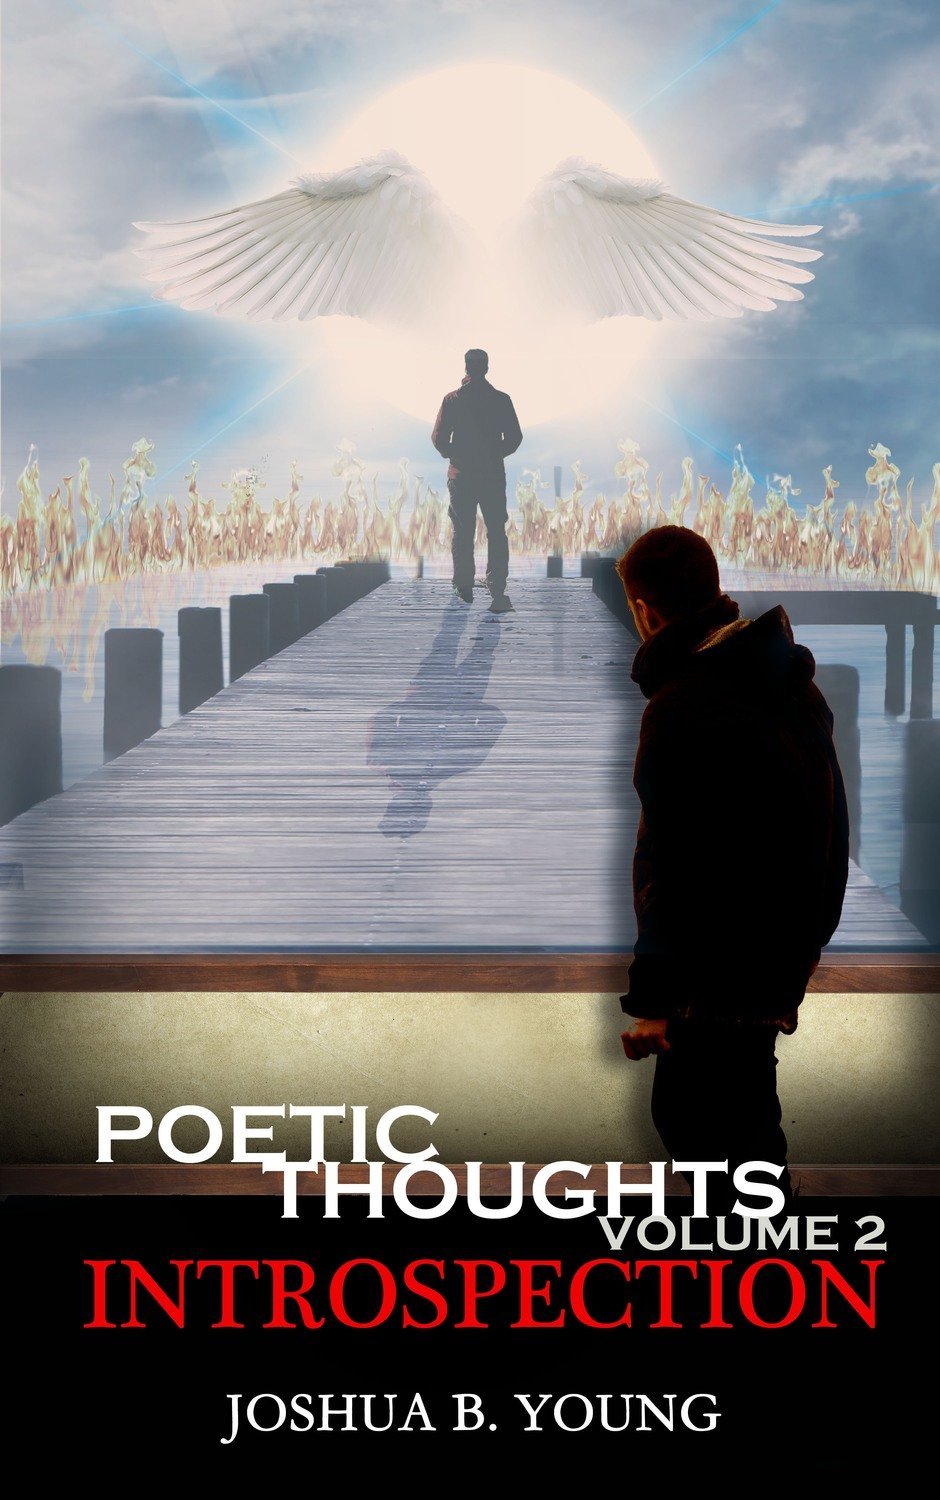 Poetic Thoughts Volume 2: Introspection by Joshua B Young